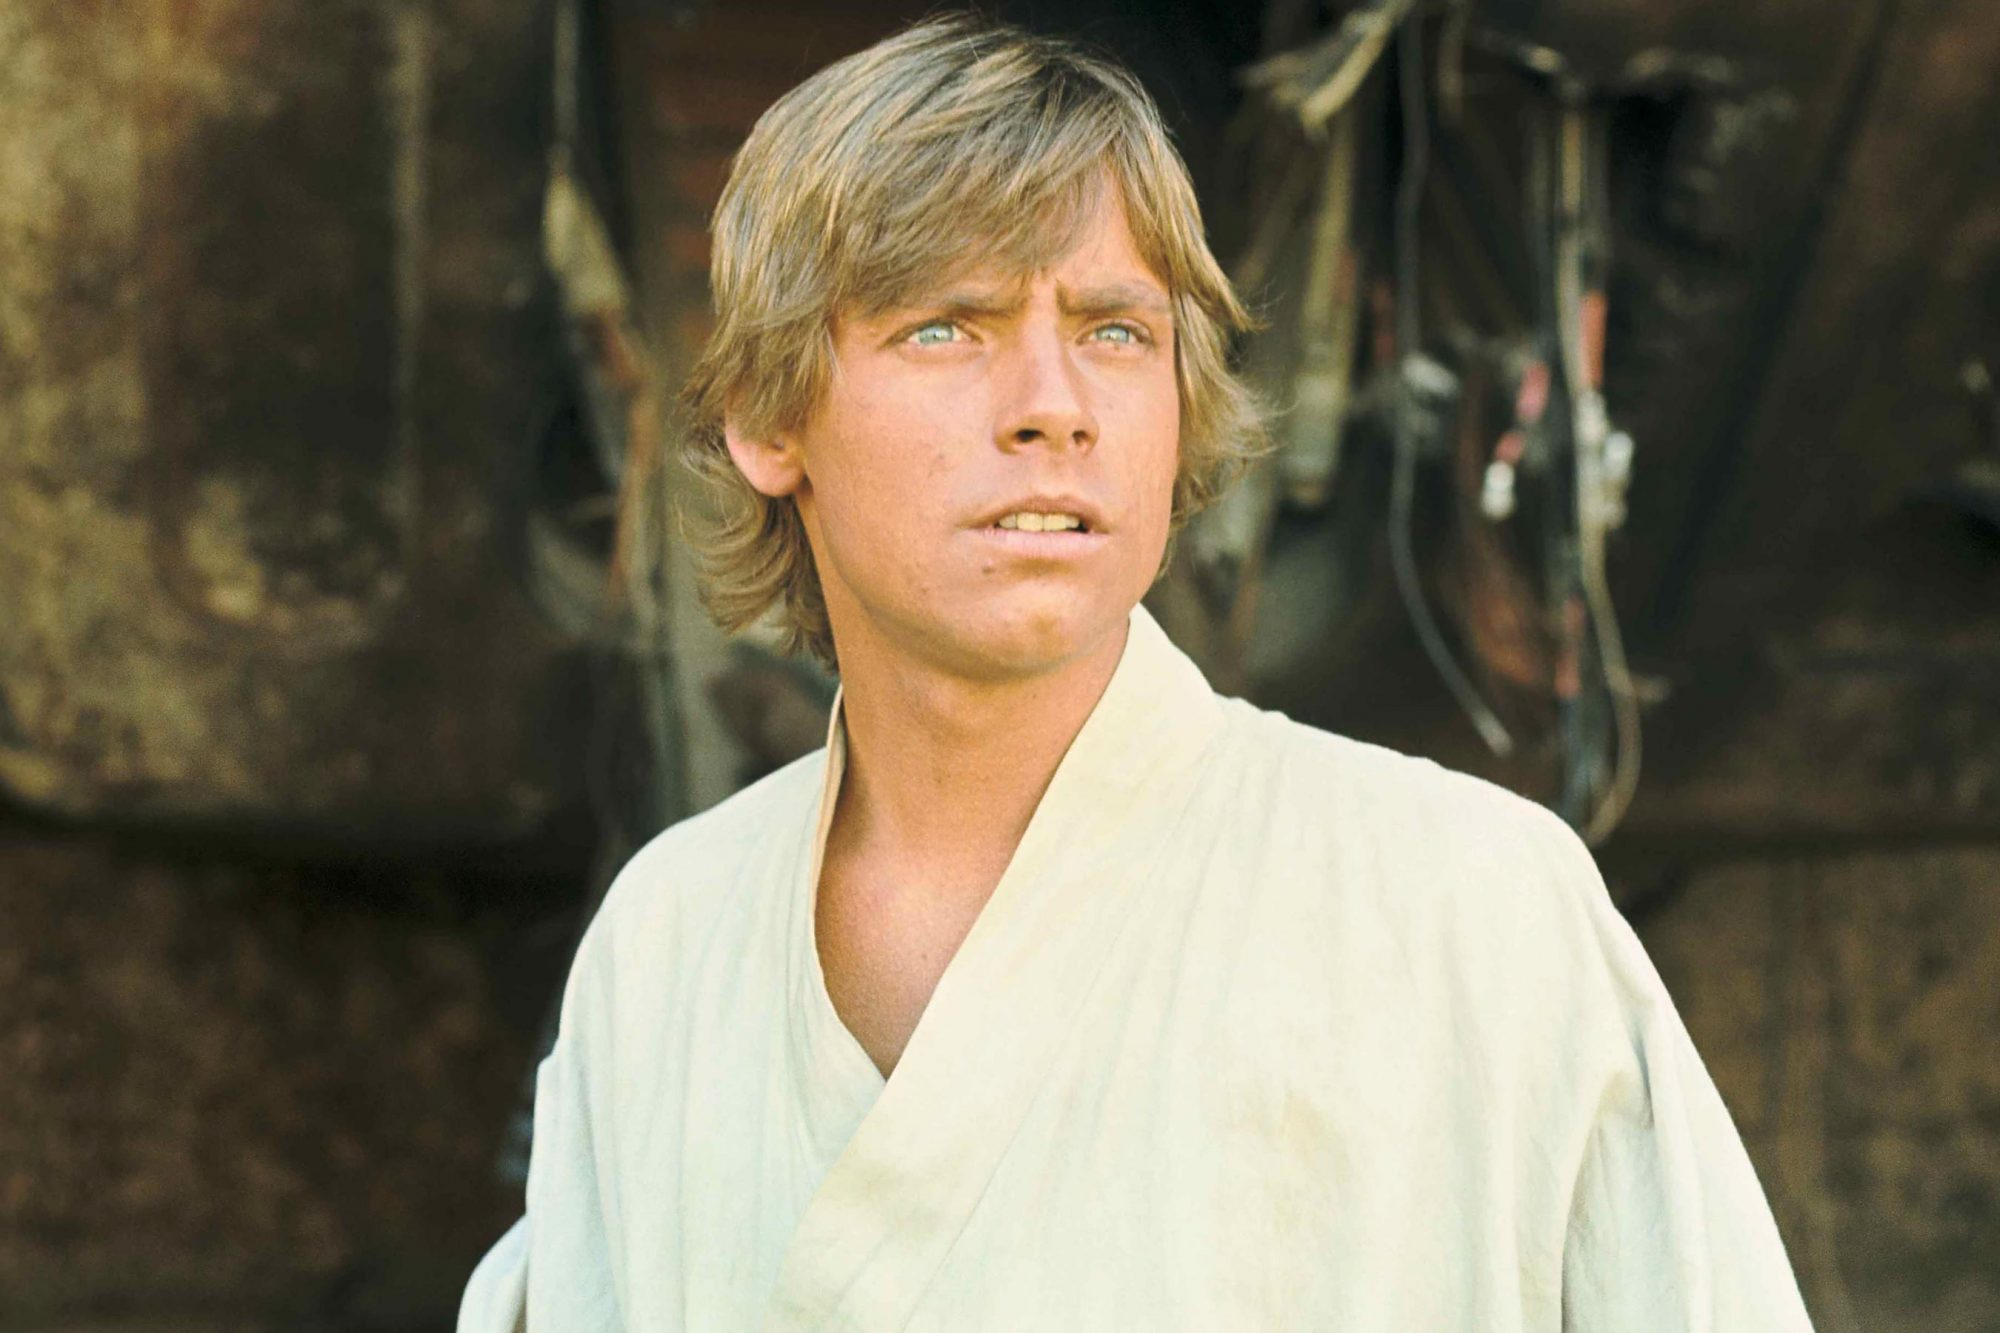 Star Wars: Episode IV - A New Hope (1977) Mark Hamill CR: Lucasfilm